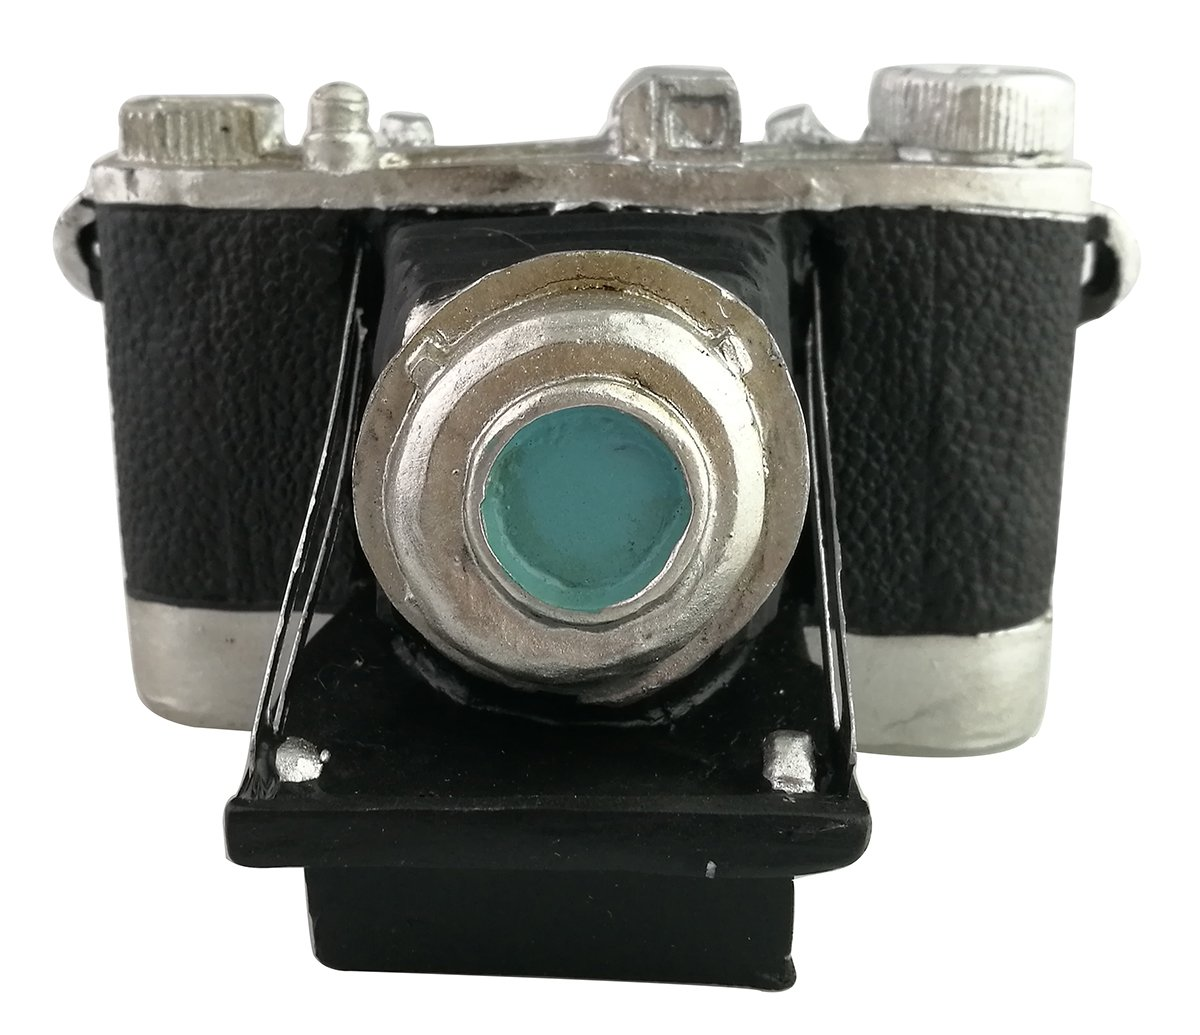 Creative Retro Vintage Old Fashion Resin Camera Ornament for Home Bar Decoration 13718